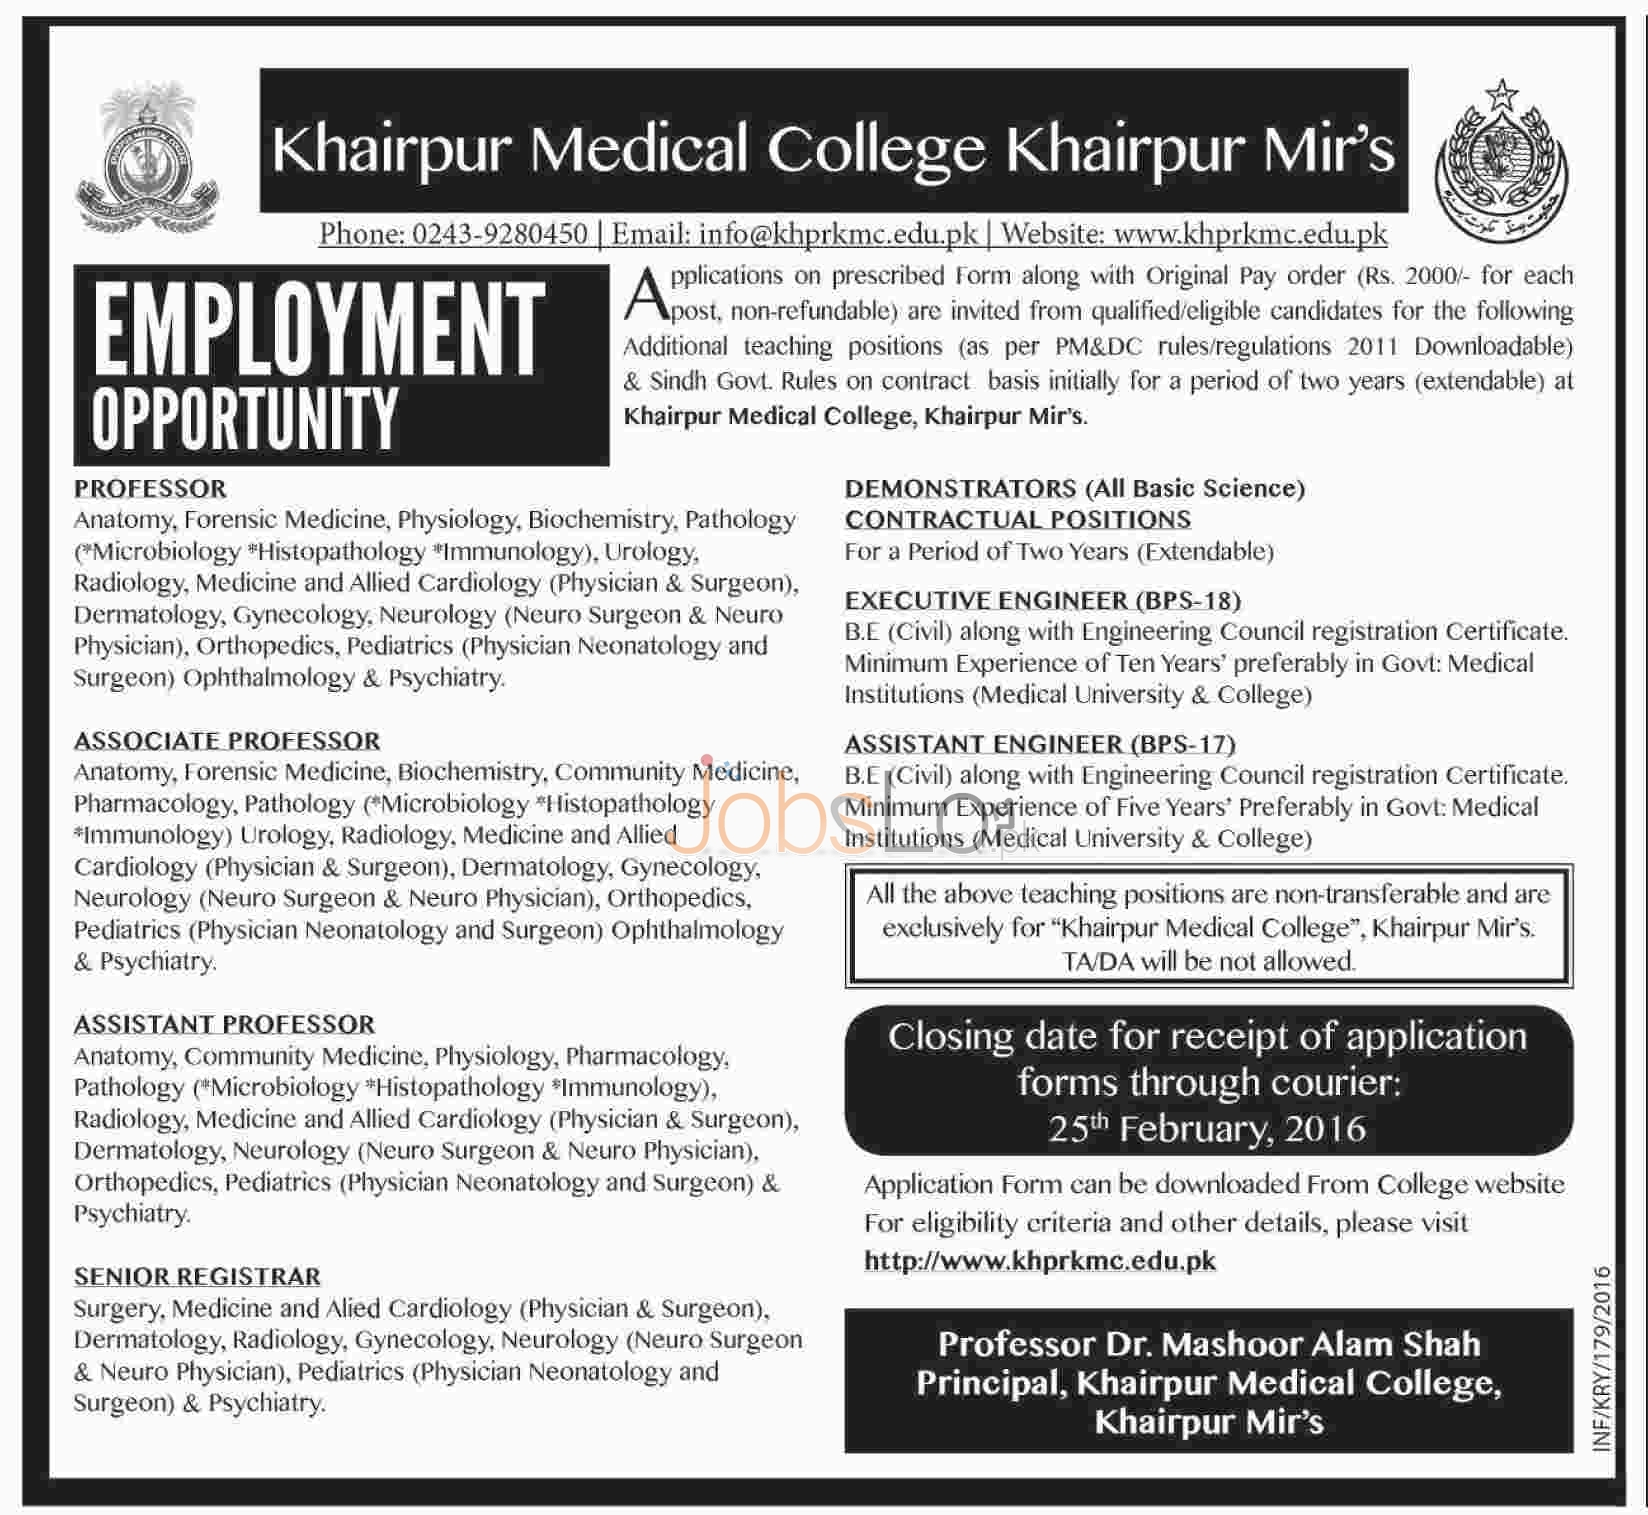 Khairpur Medical College 2016 in Khairpur Mir's Career Opportnities